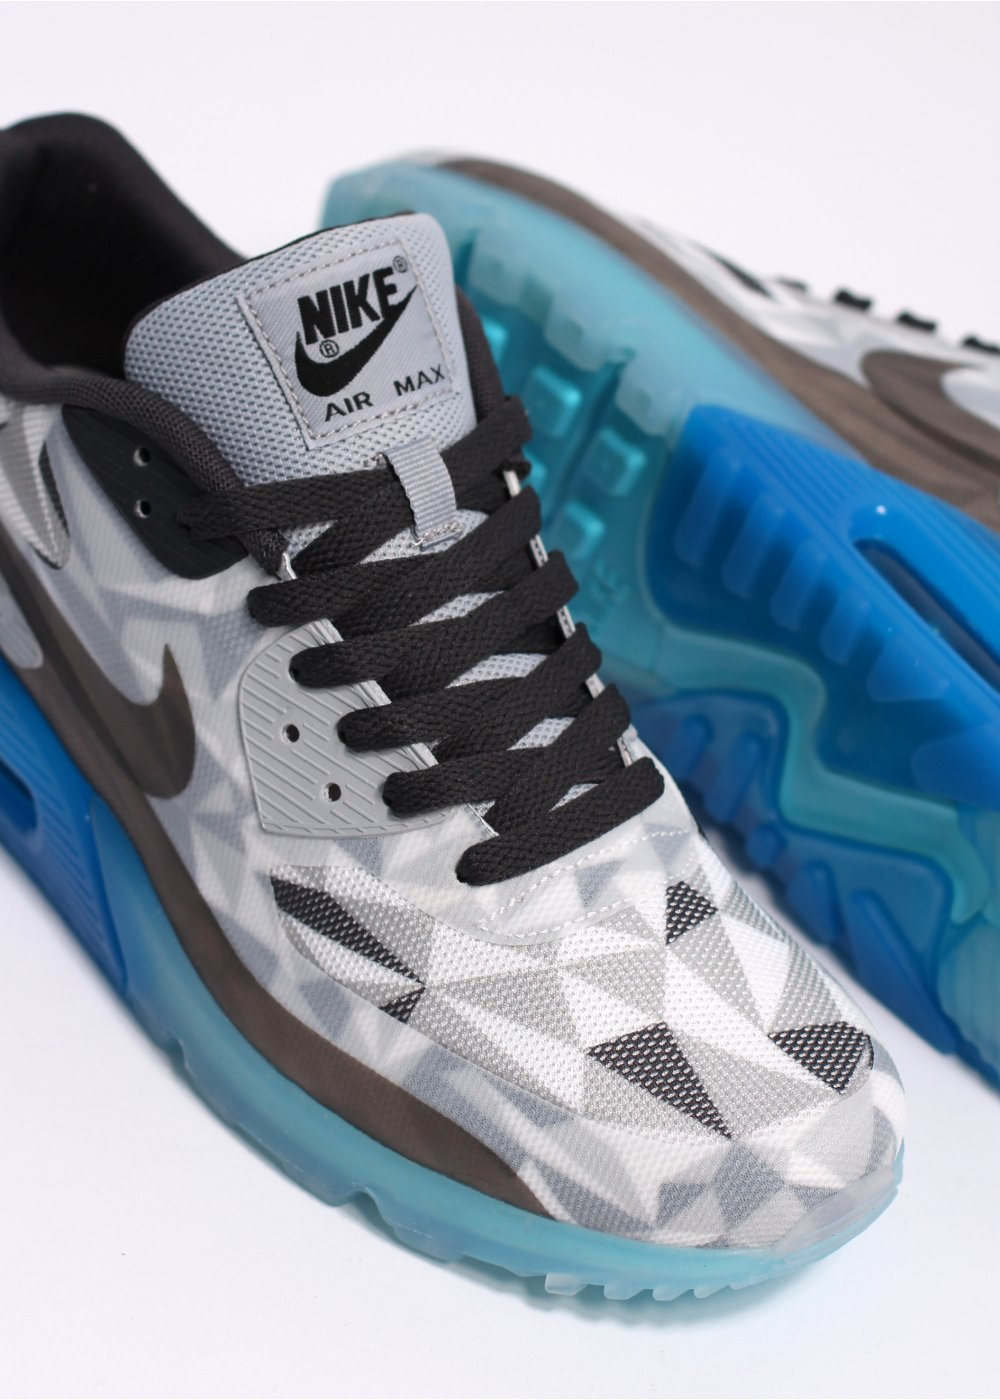 nike air max 90 ice blue